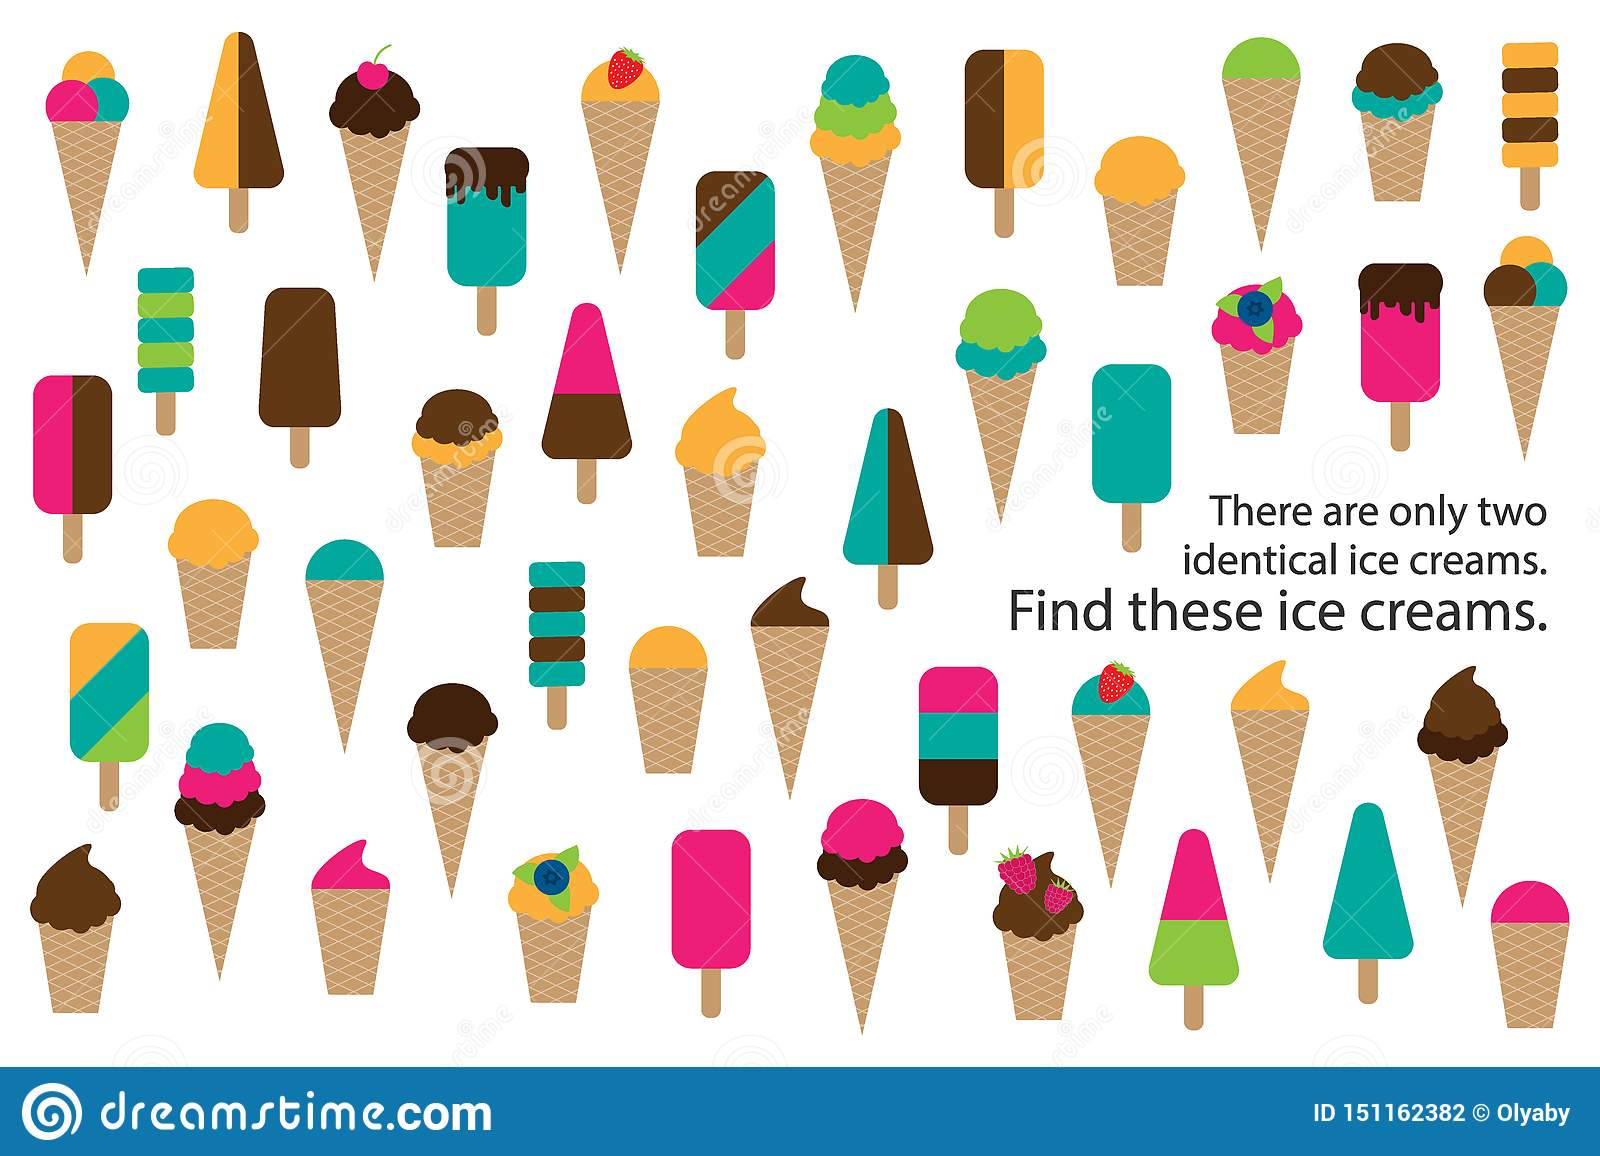 Find Two Identical Ice Creams Summer Fun Education Puzzle